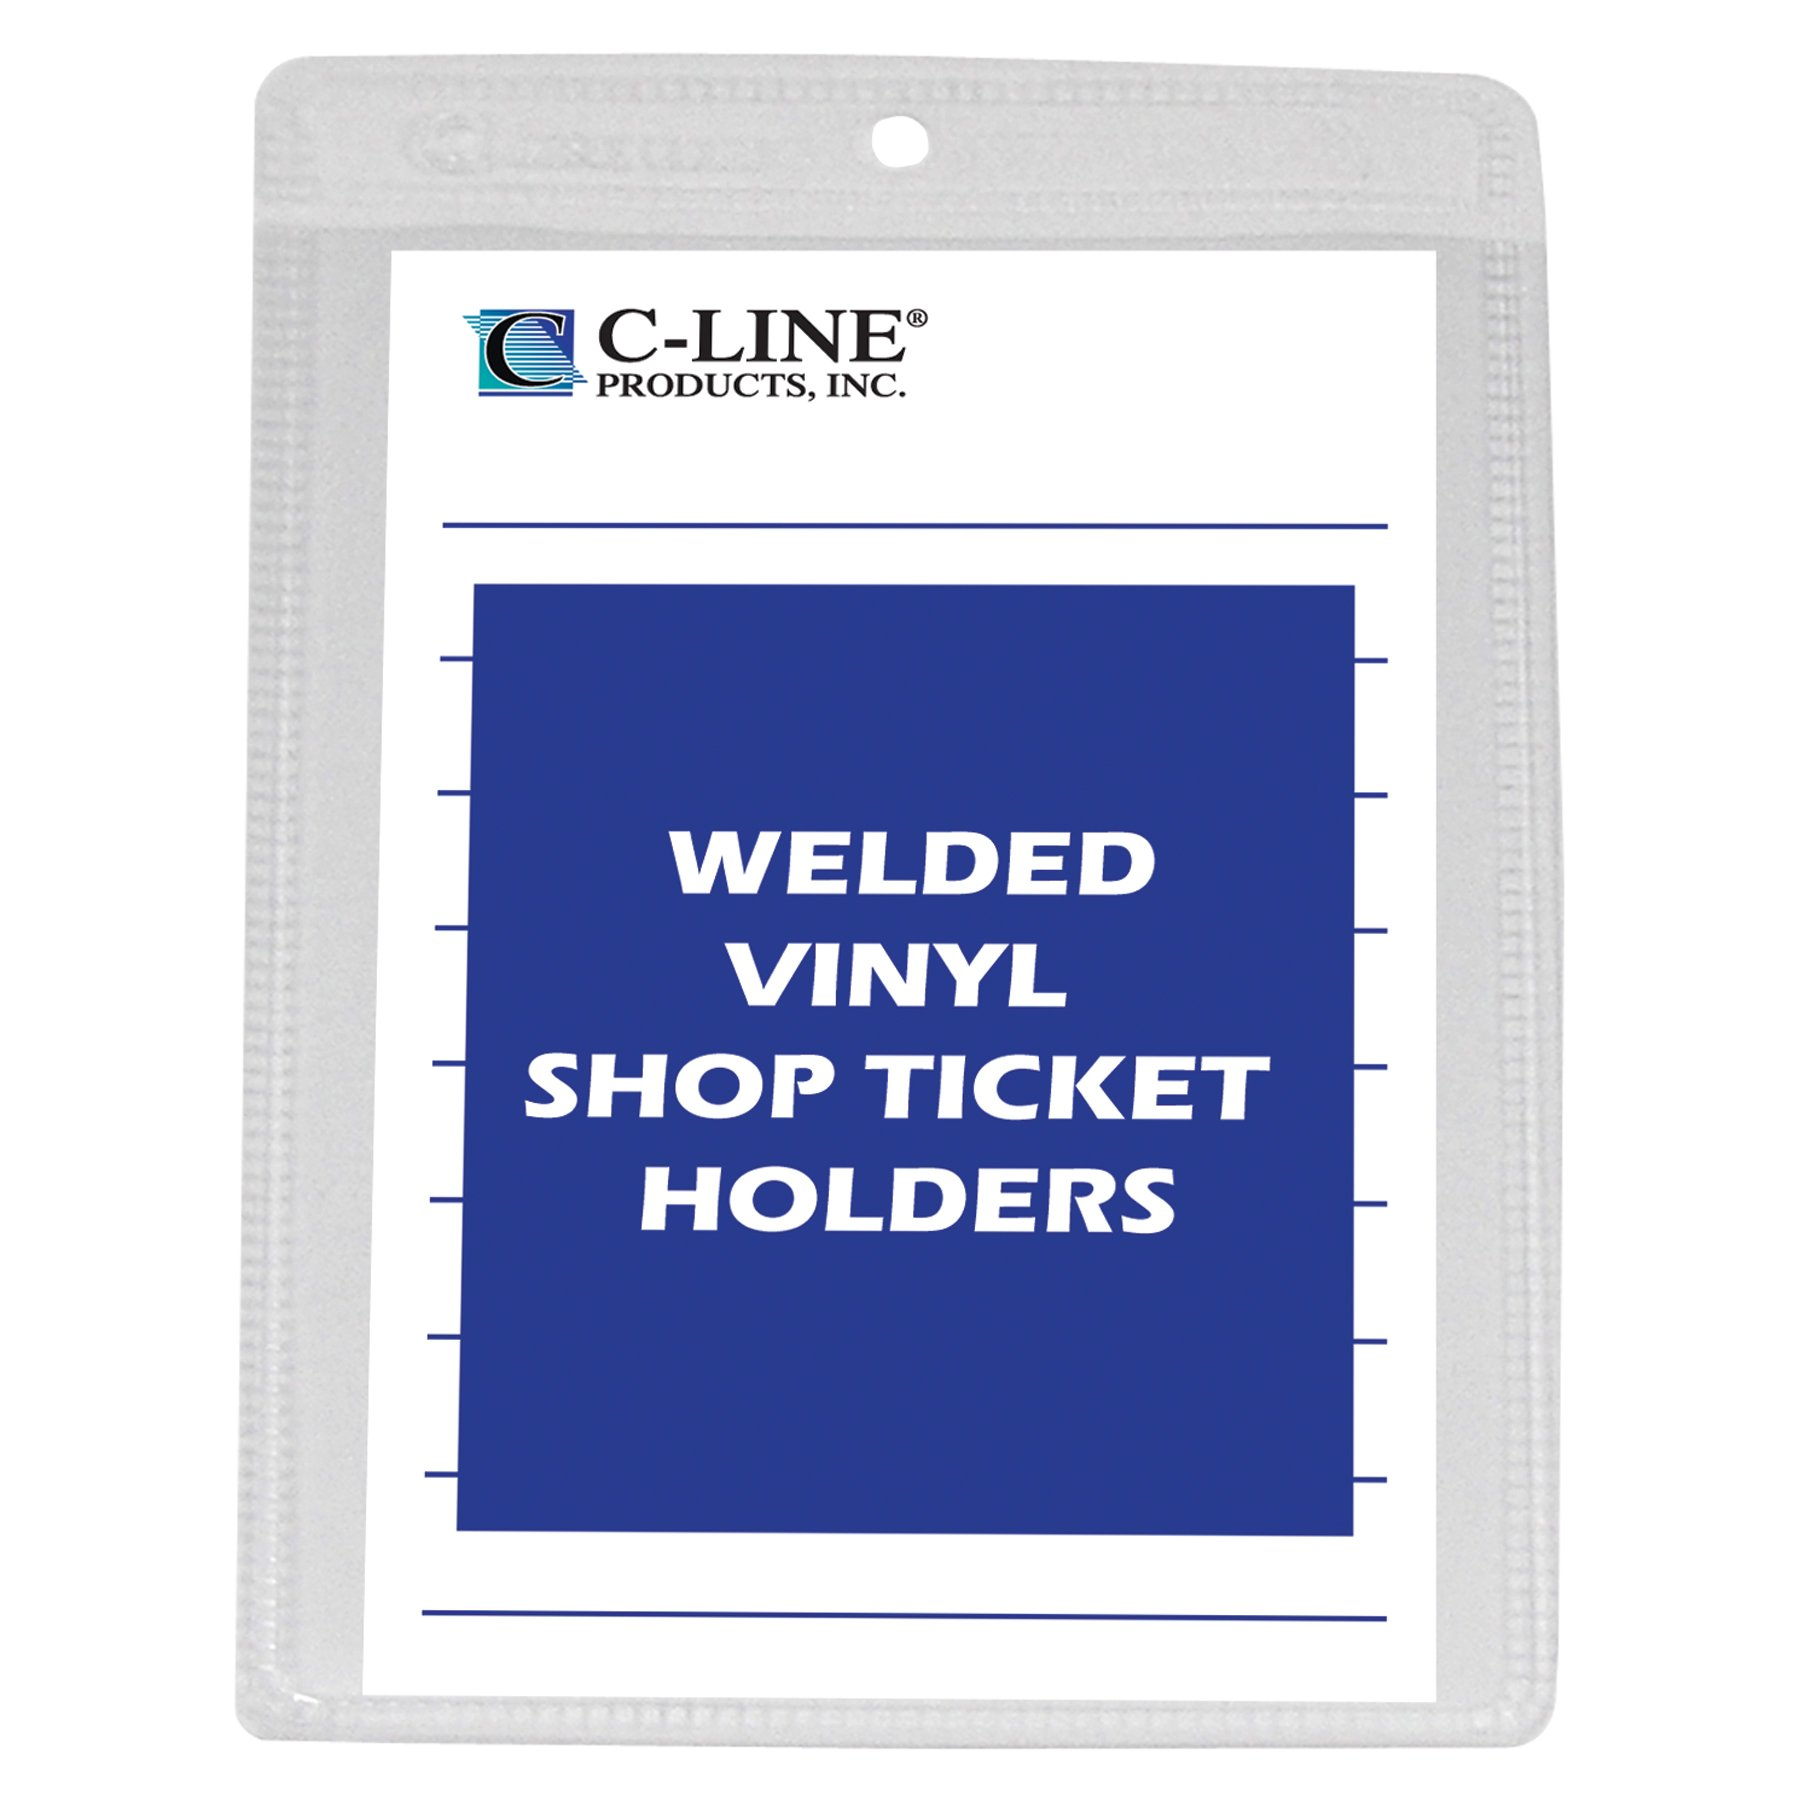 C-Line Vinyl Shop Ticket Holders, Both Sides Clear, 4 x 6 Inches, 50 per Box (80046) by C-Line